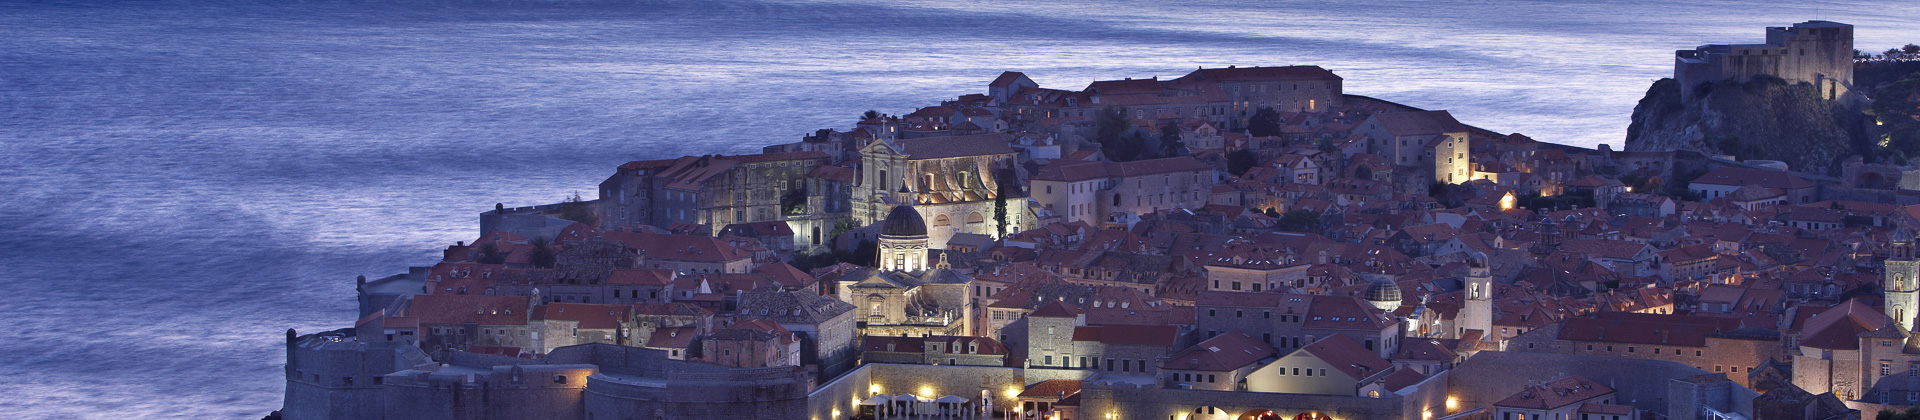 the old town and harbour at dusk, Dubrovnik, Dalmatia, Croatia